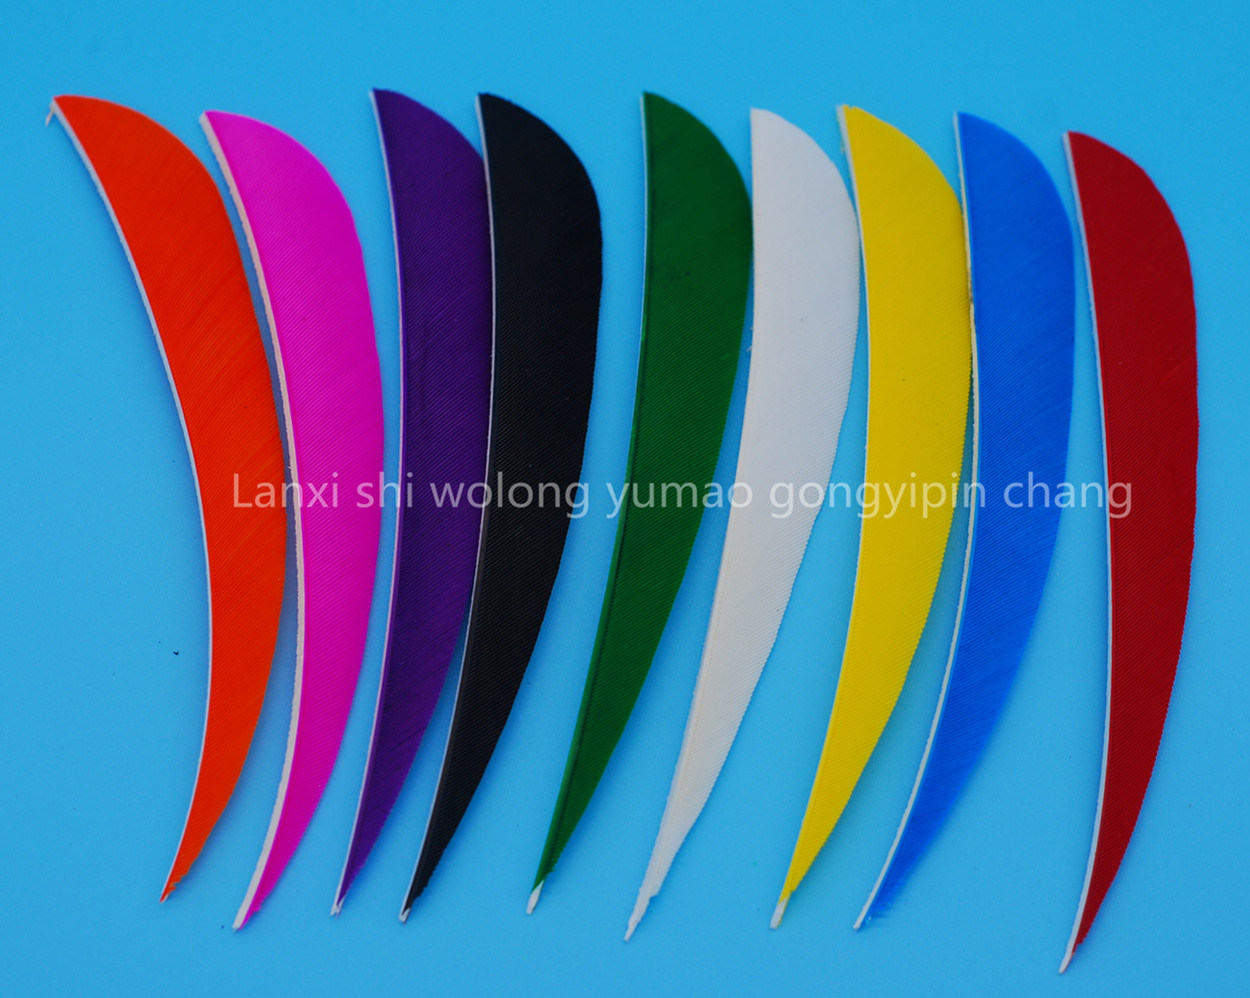 5 Inch Right Wing Parabol Feather for Archery